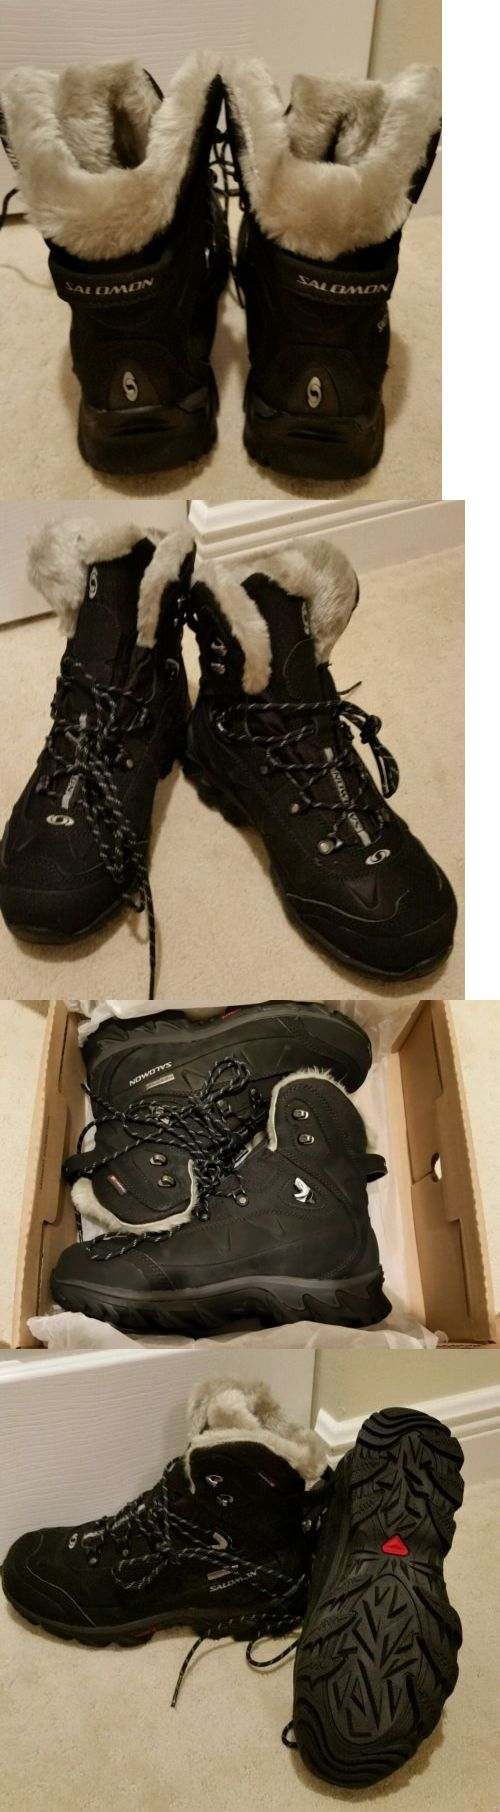 Womens 181393: Salomon Waterproof Nytro Wp W Womens Hikers Black Climatherm Winter Boots Us 7 BUY IT NOW ONLY: $75.0